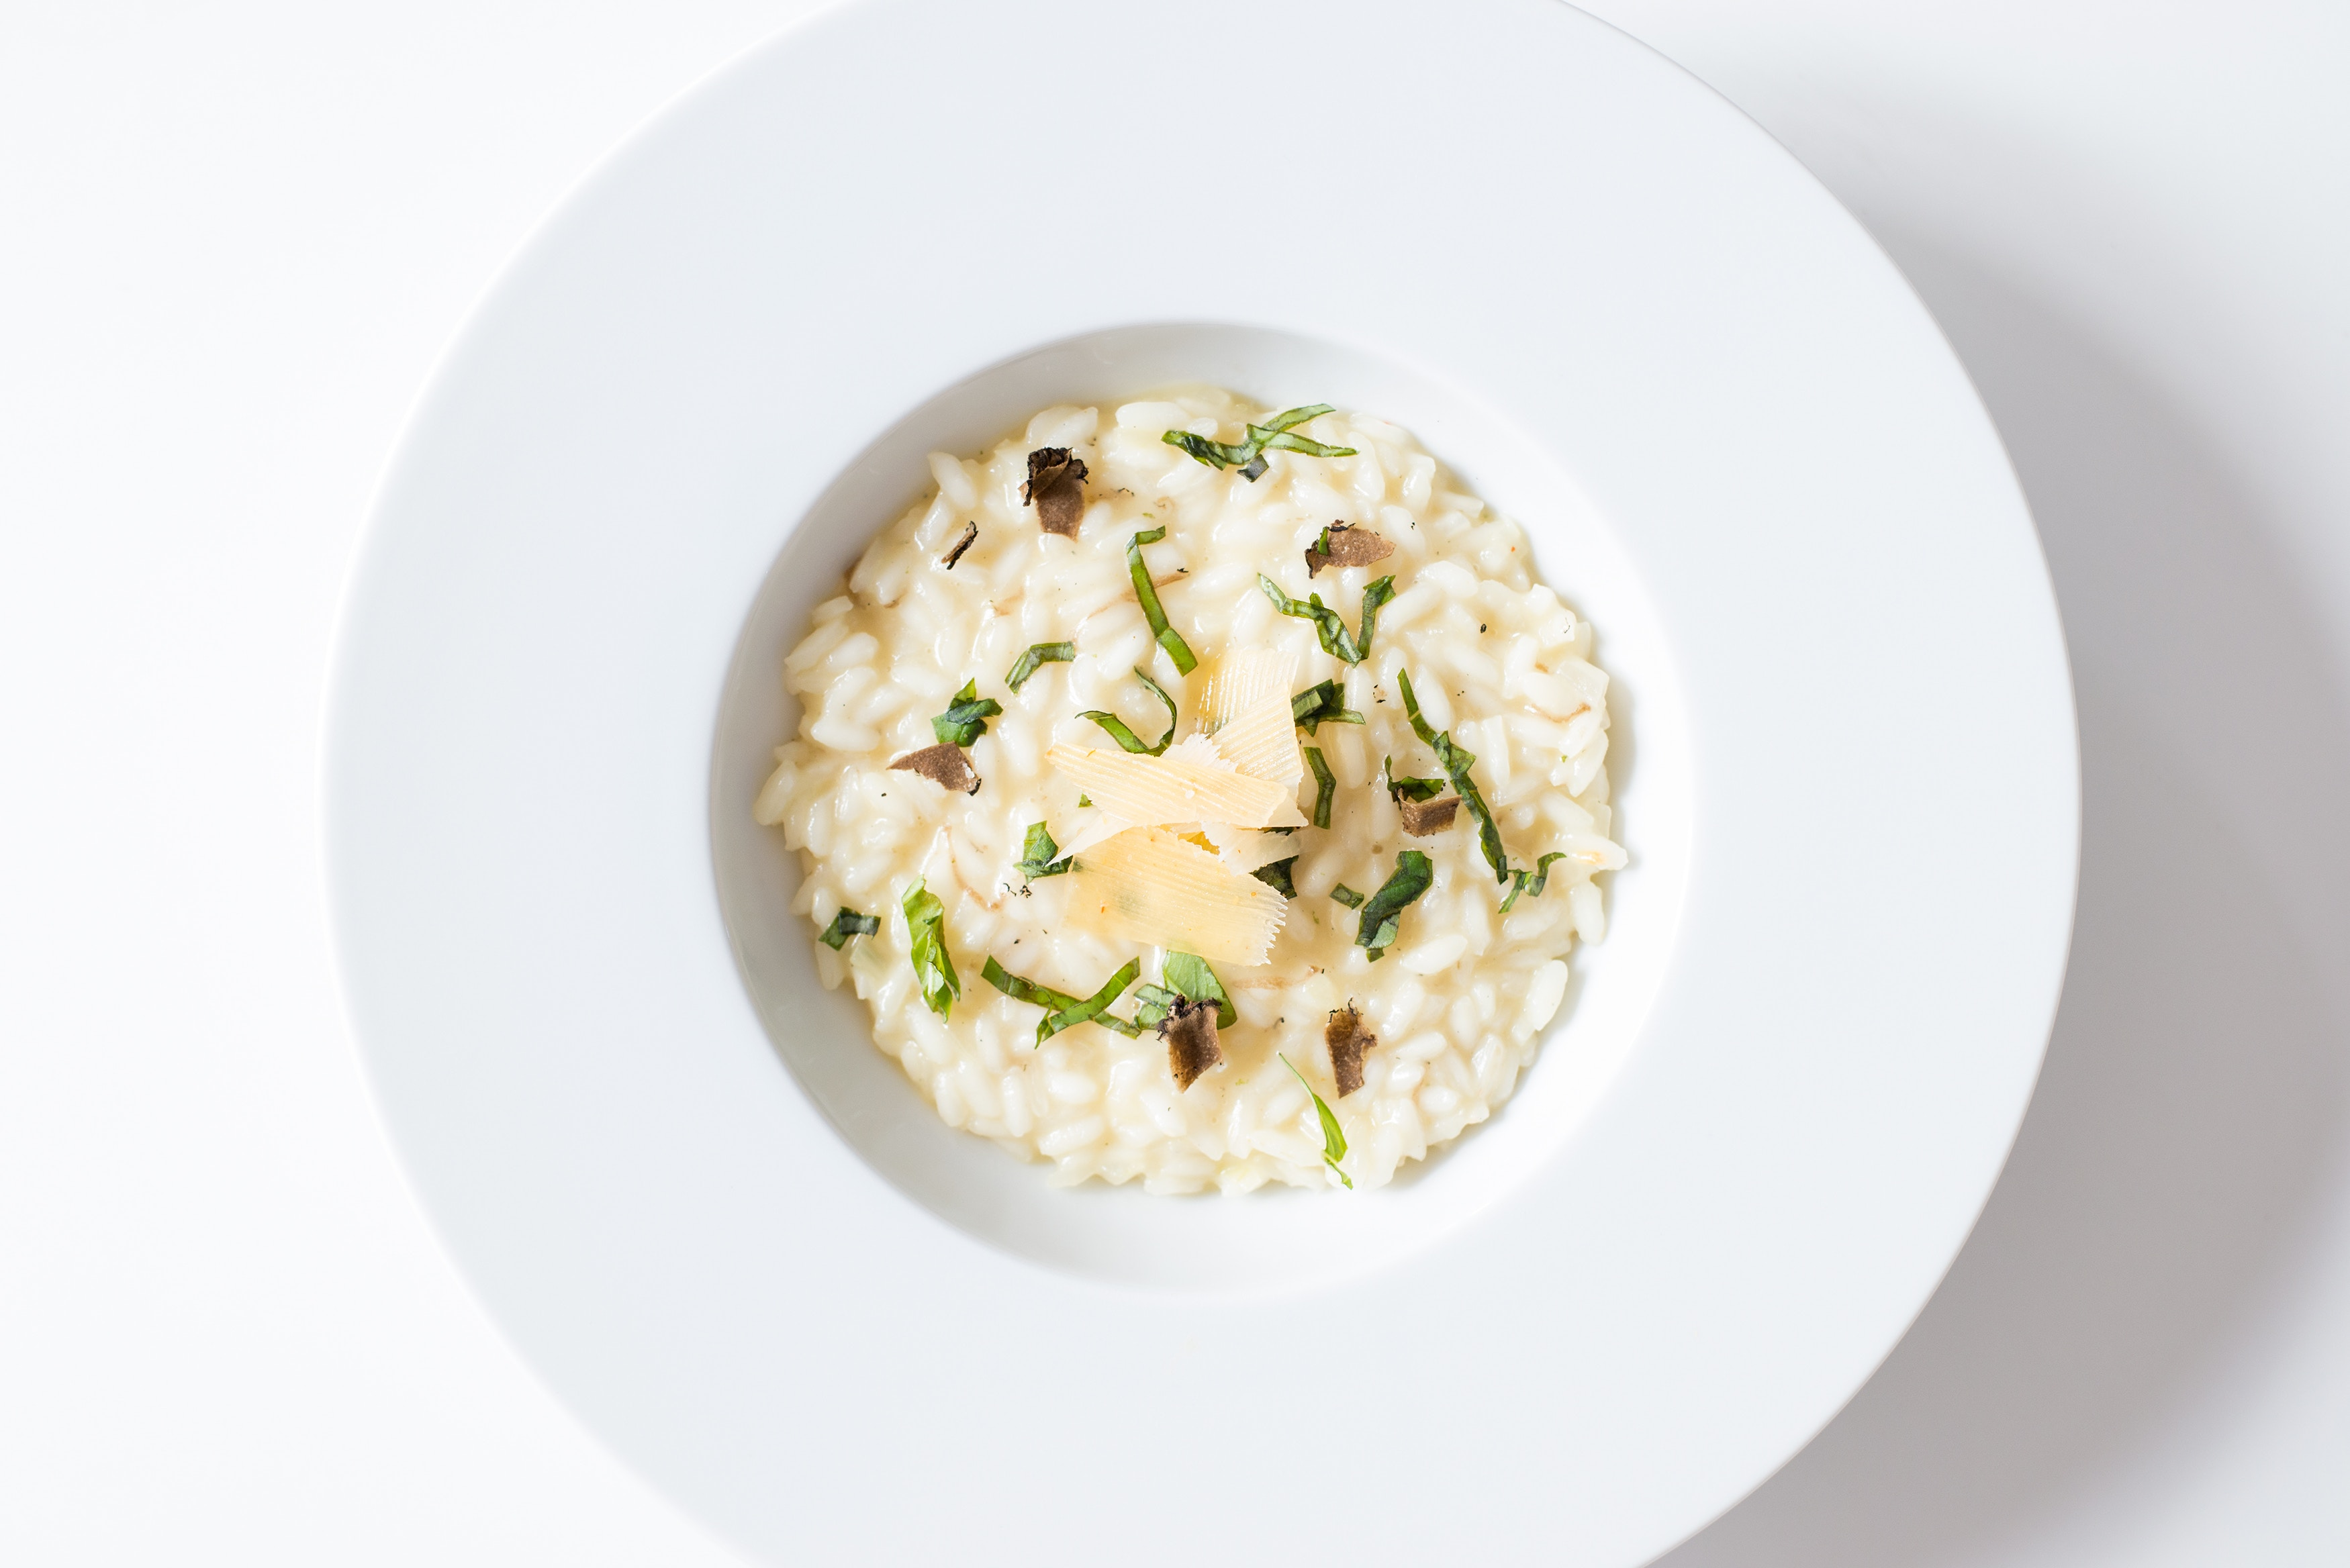 Risotto at The School of Artisan Food